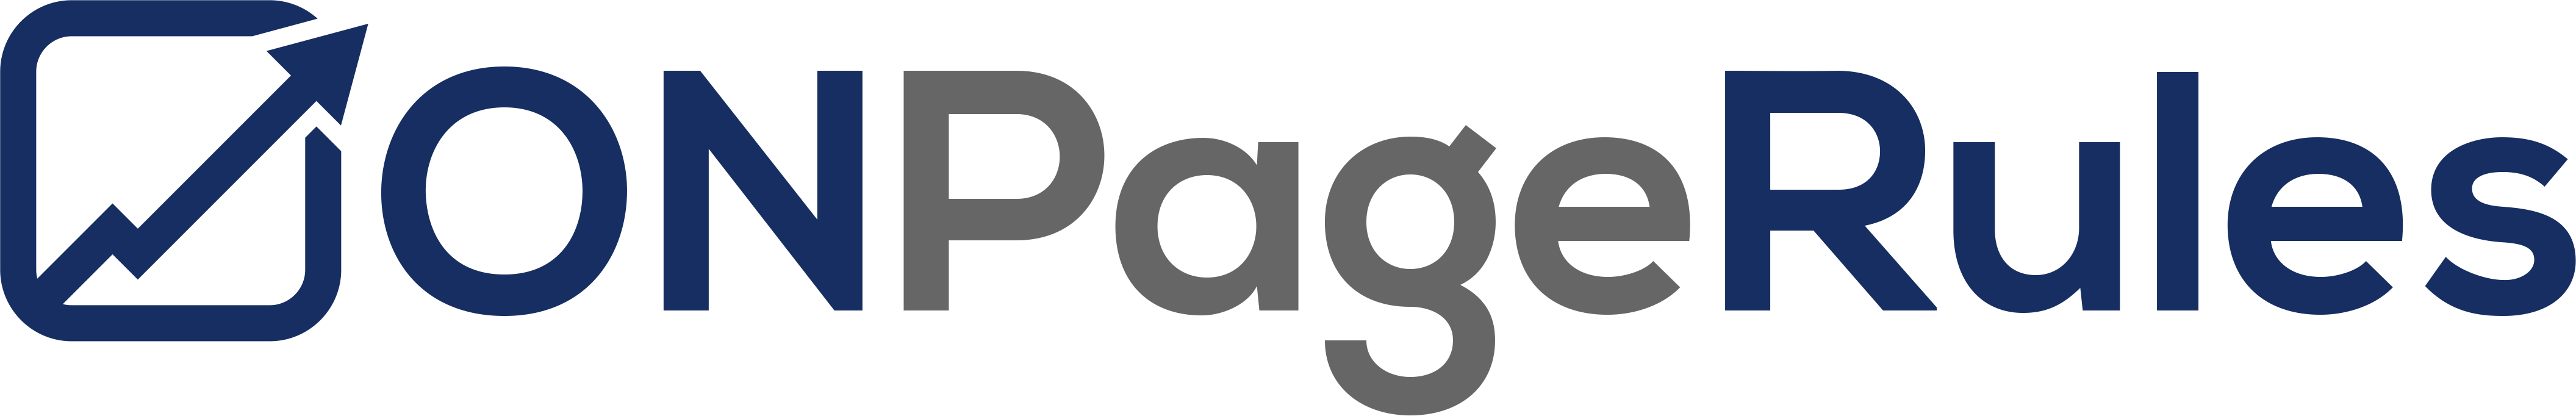 ONPageRules Announces the Launch of their New OnPage SEO Optimization Services – Press Release